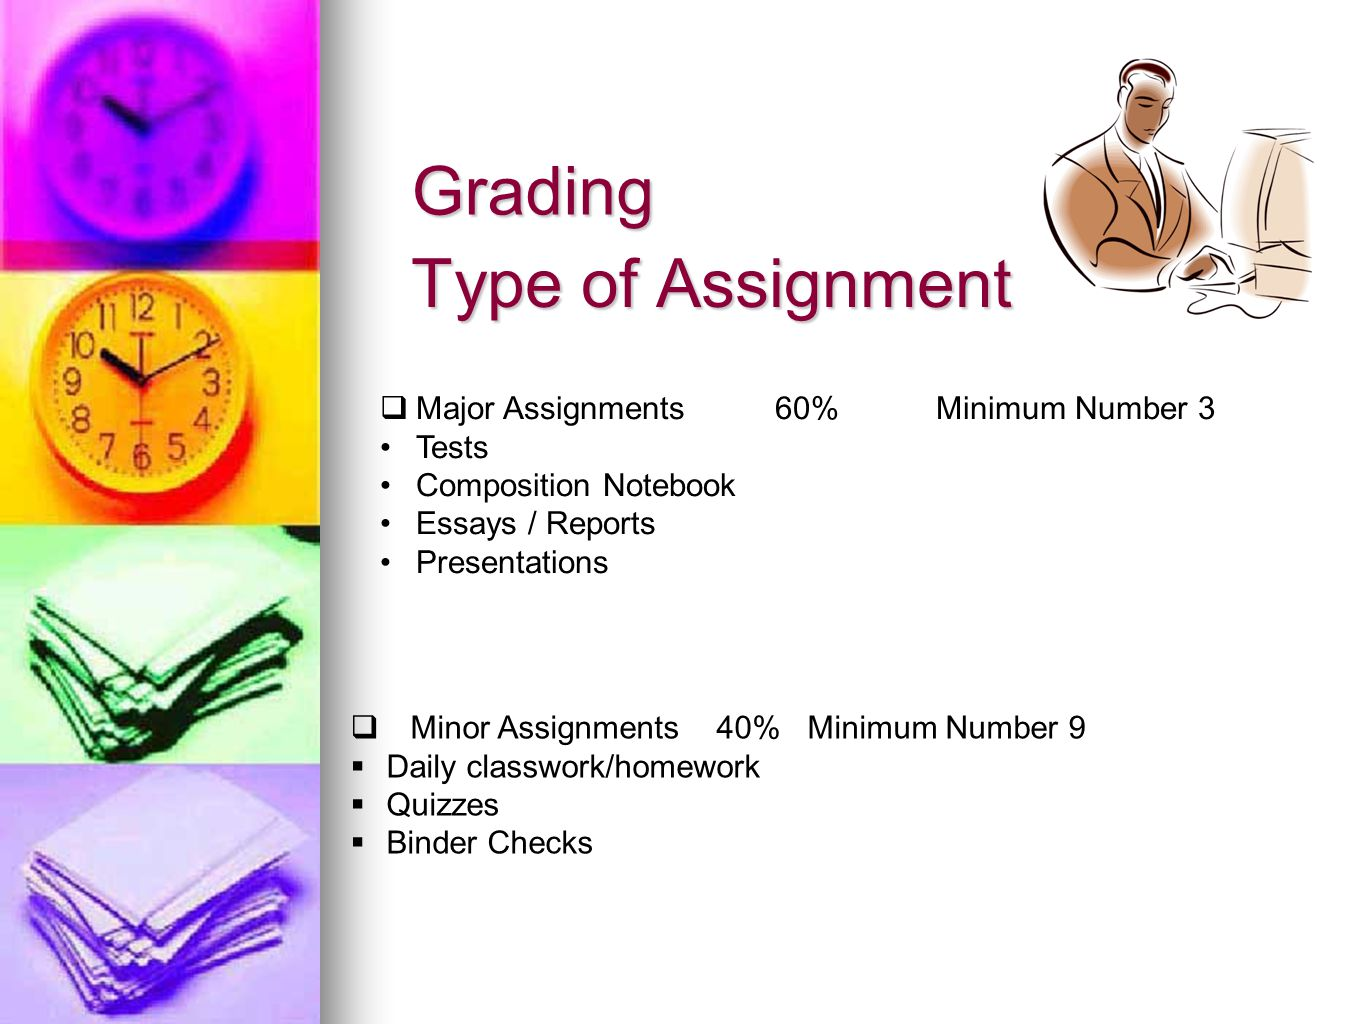 Type of Assignment  Major Assignments 60% Minimum Number 3 Tests Composition Notebook Essays / Reports Presentations  Minor Assignments 40% Minimum